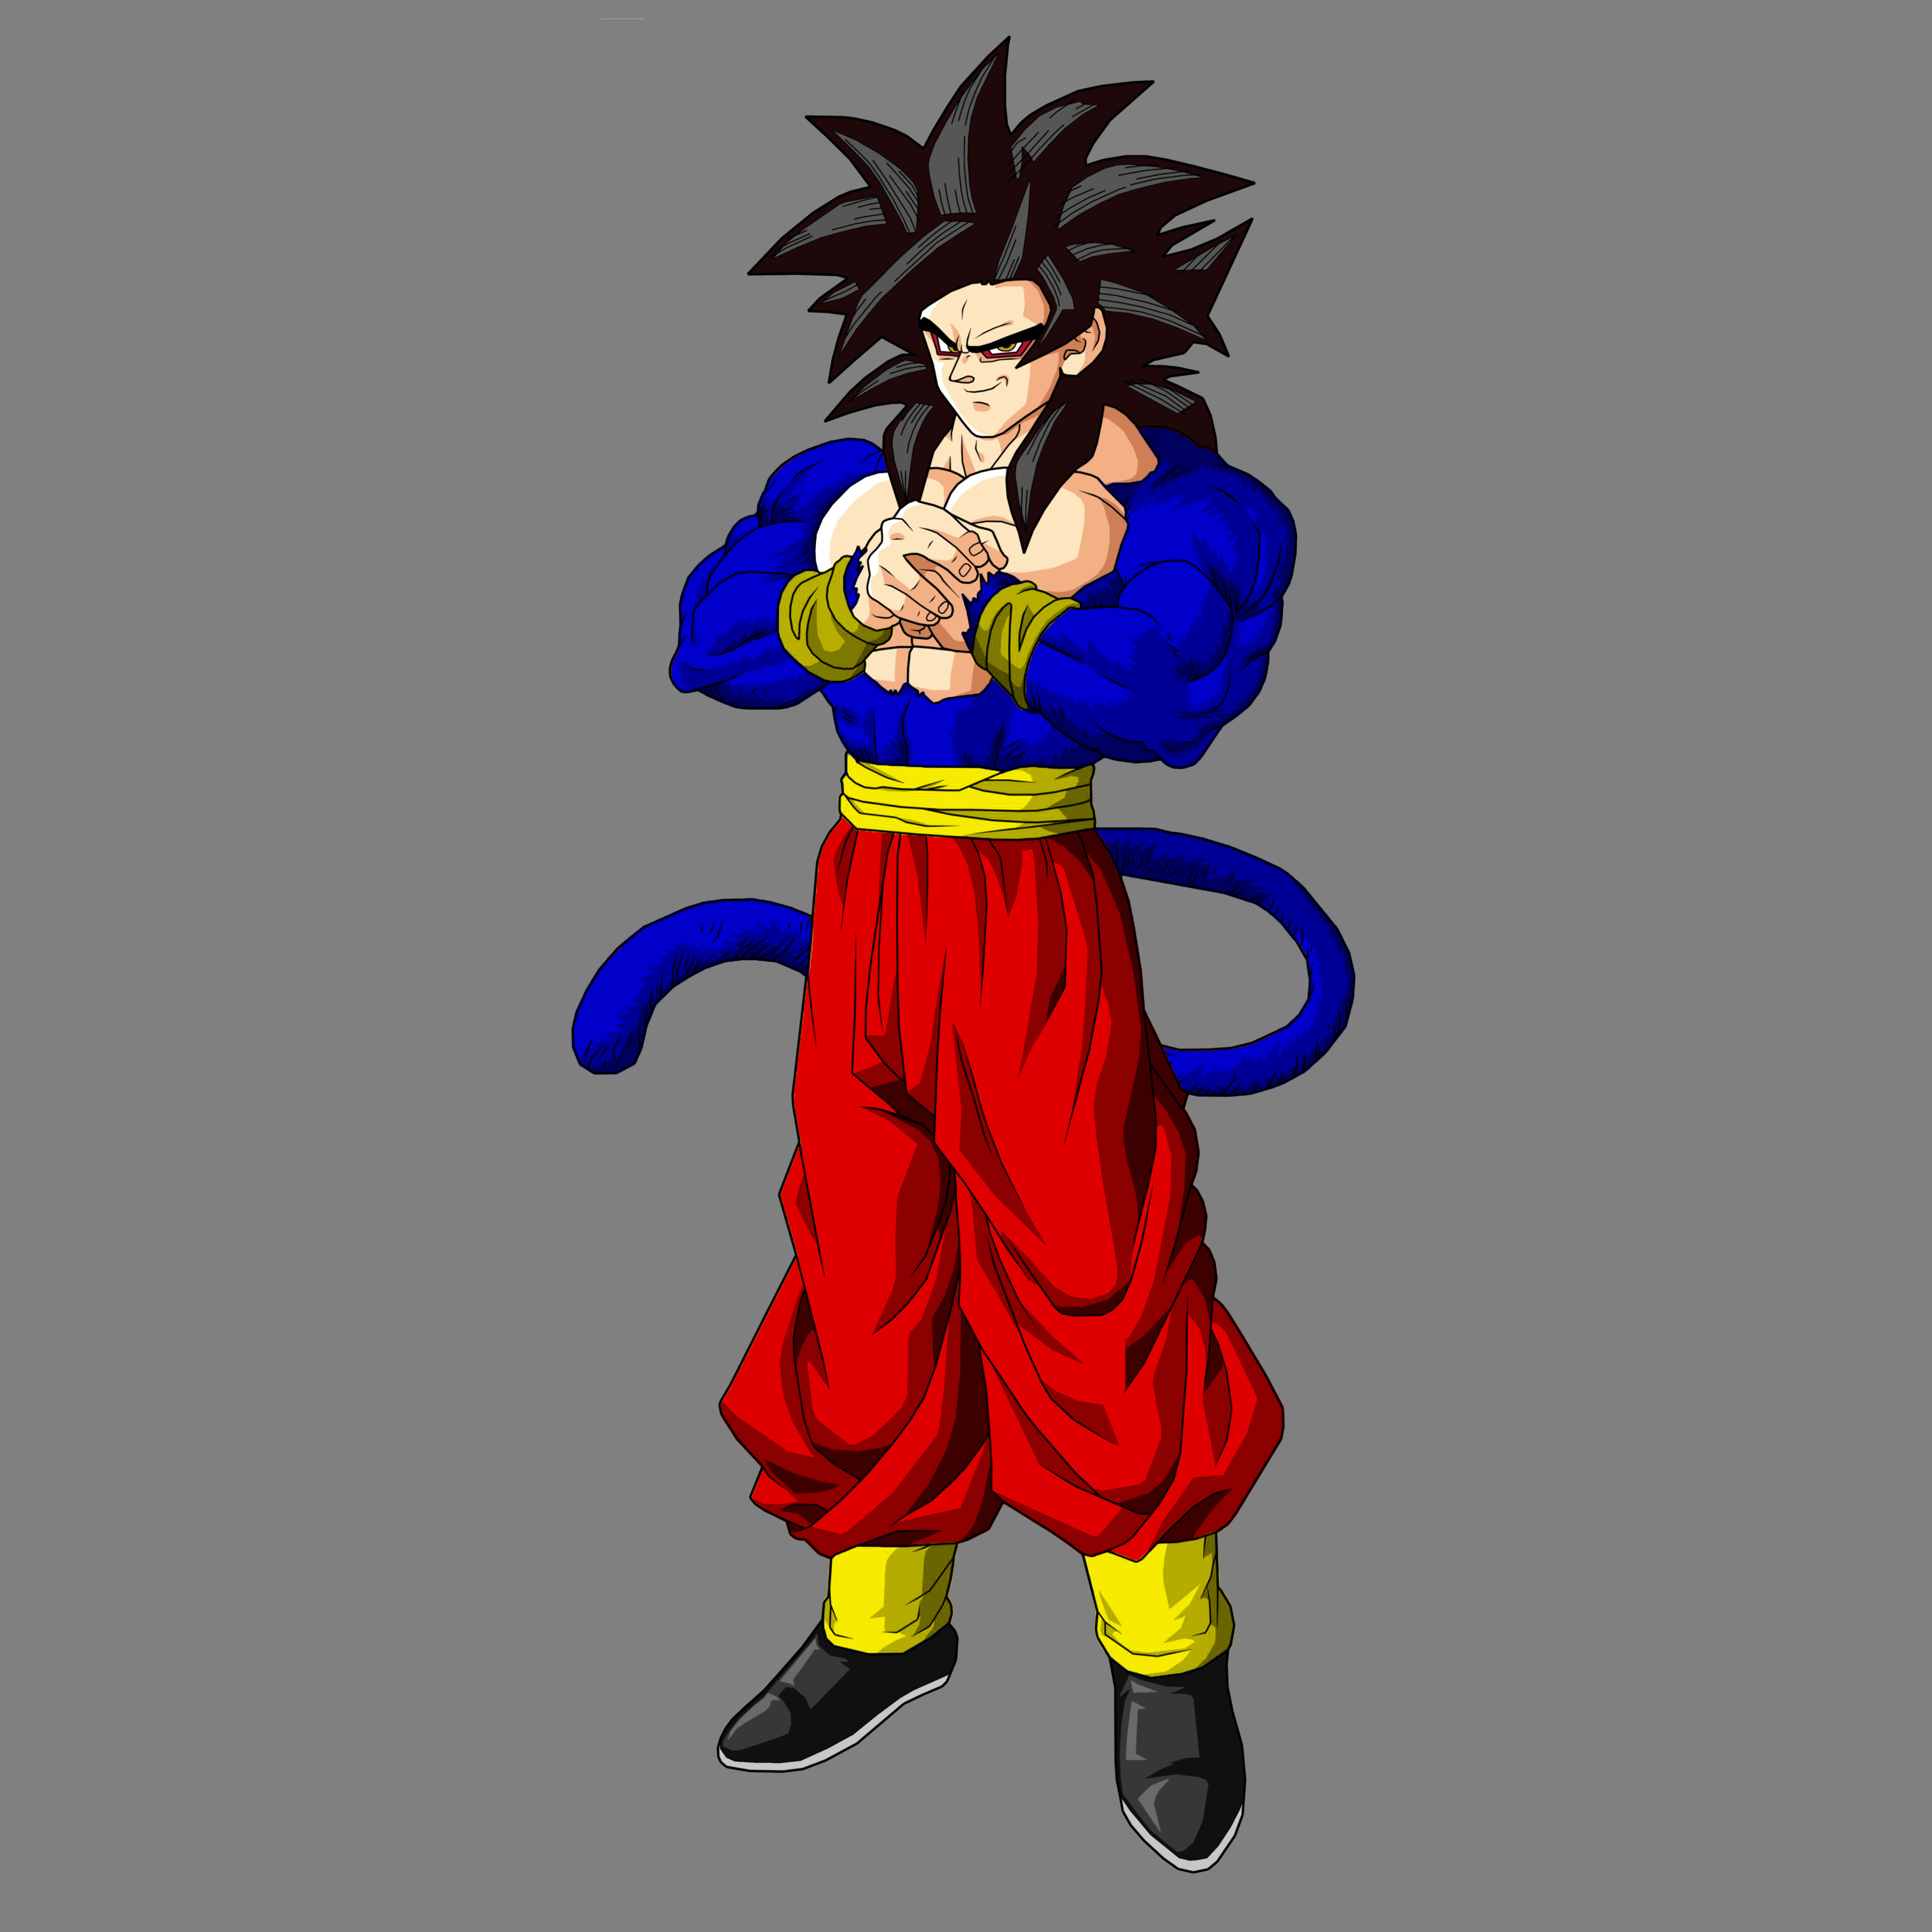 Goku ssj4 alternative costume by Demonlord6 on DeviantArt